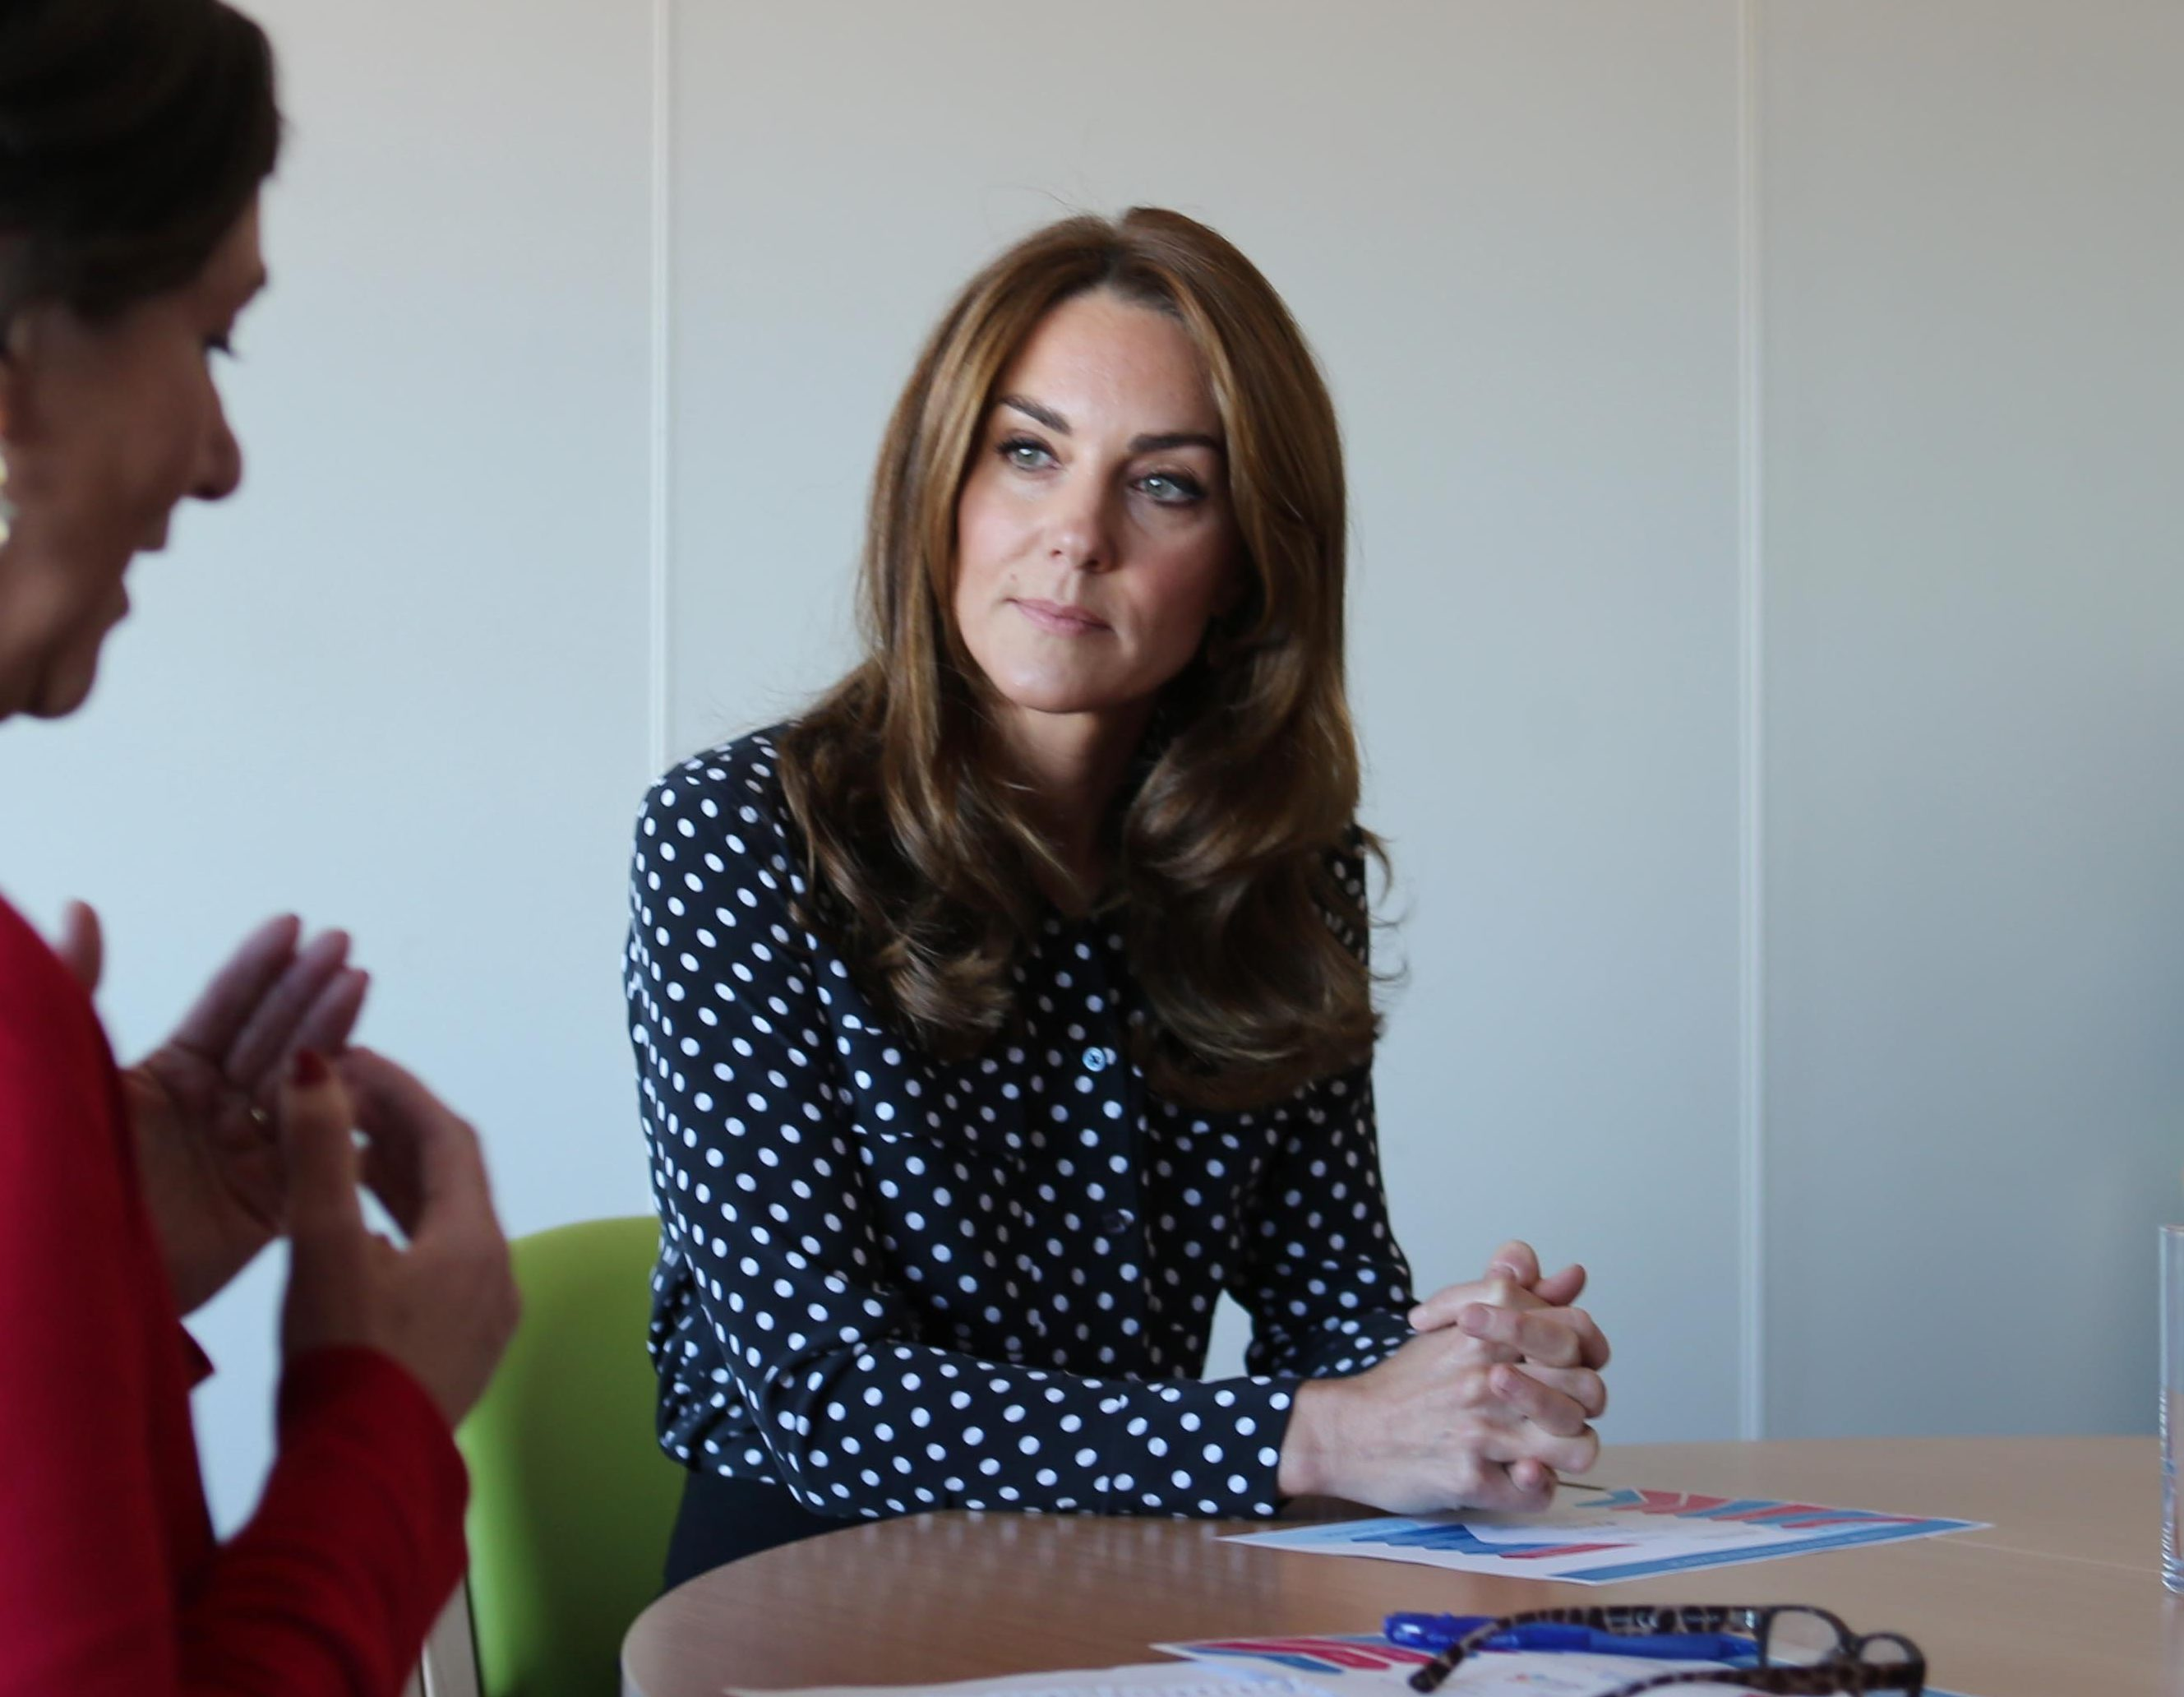 Mandatory Credit: Photo by Shutterstock (10418221d) Catherine Duchess of Cambridge Catherine Duchess of Cambridge visits Sunshine House Children and Young People's Health and Development Centre, Peckham, London, UK - 19 Sep 2019 To further her research and engagement with the Early Years sector, Catherine Duchess of Cambridge will visit Sunshine House Children and Young People's Health and Development Centre to meet with the Southwark Family Nurse Partnership team and highlight the valuable work that they do.